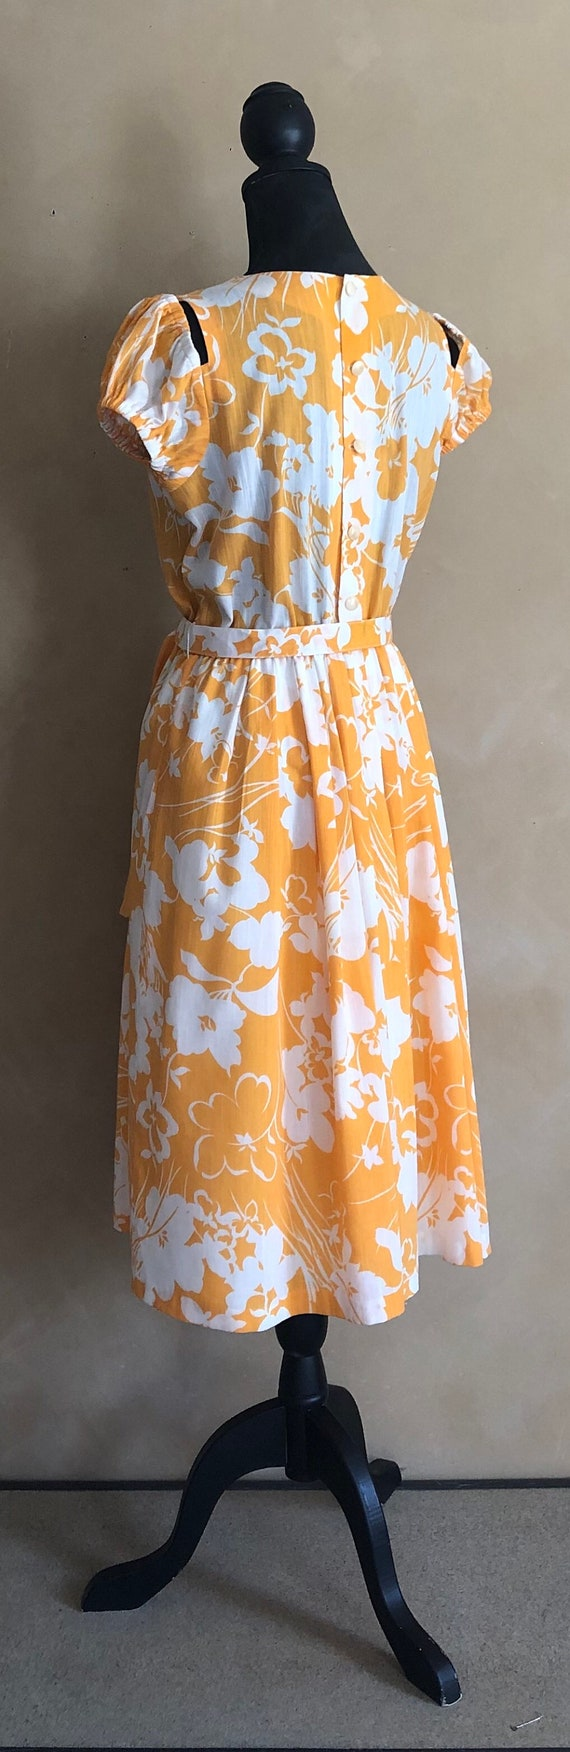 Vintage 70's Marigold  Yellow Floral Dress - image 3